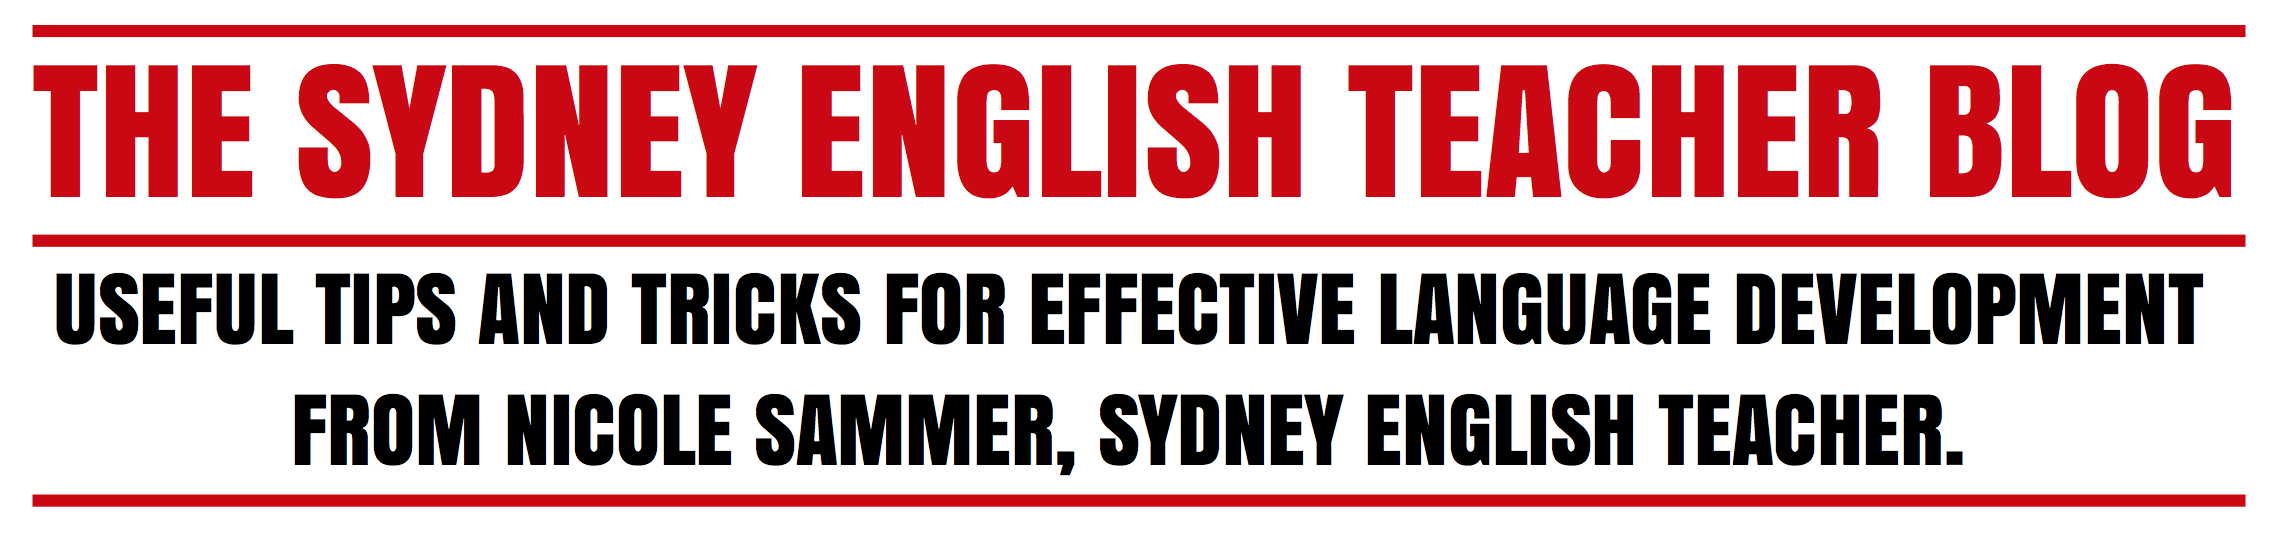 The Sydney English Teacher Blog